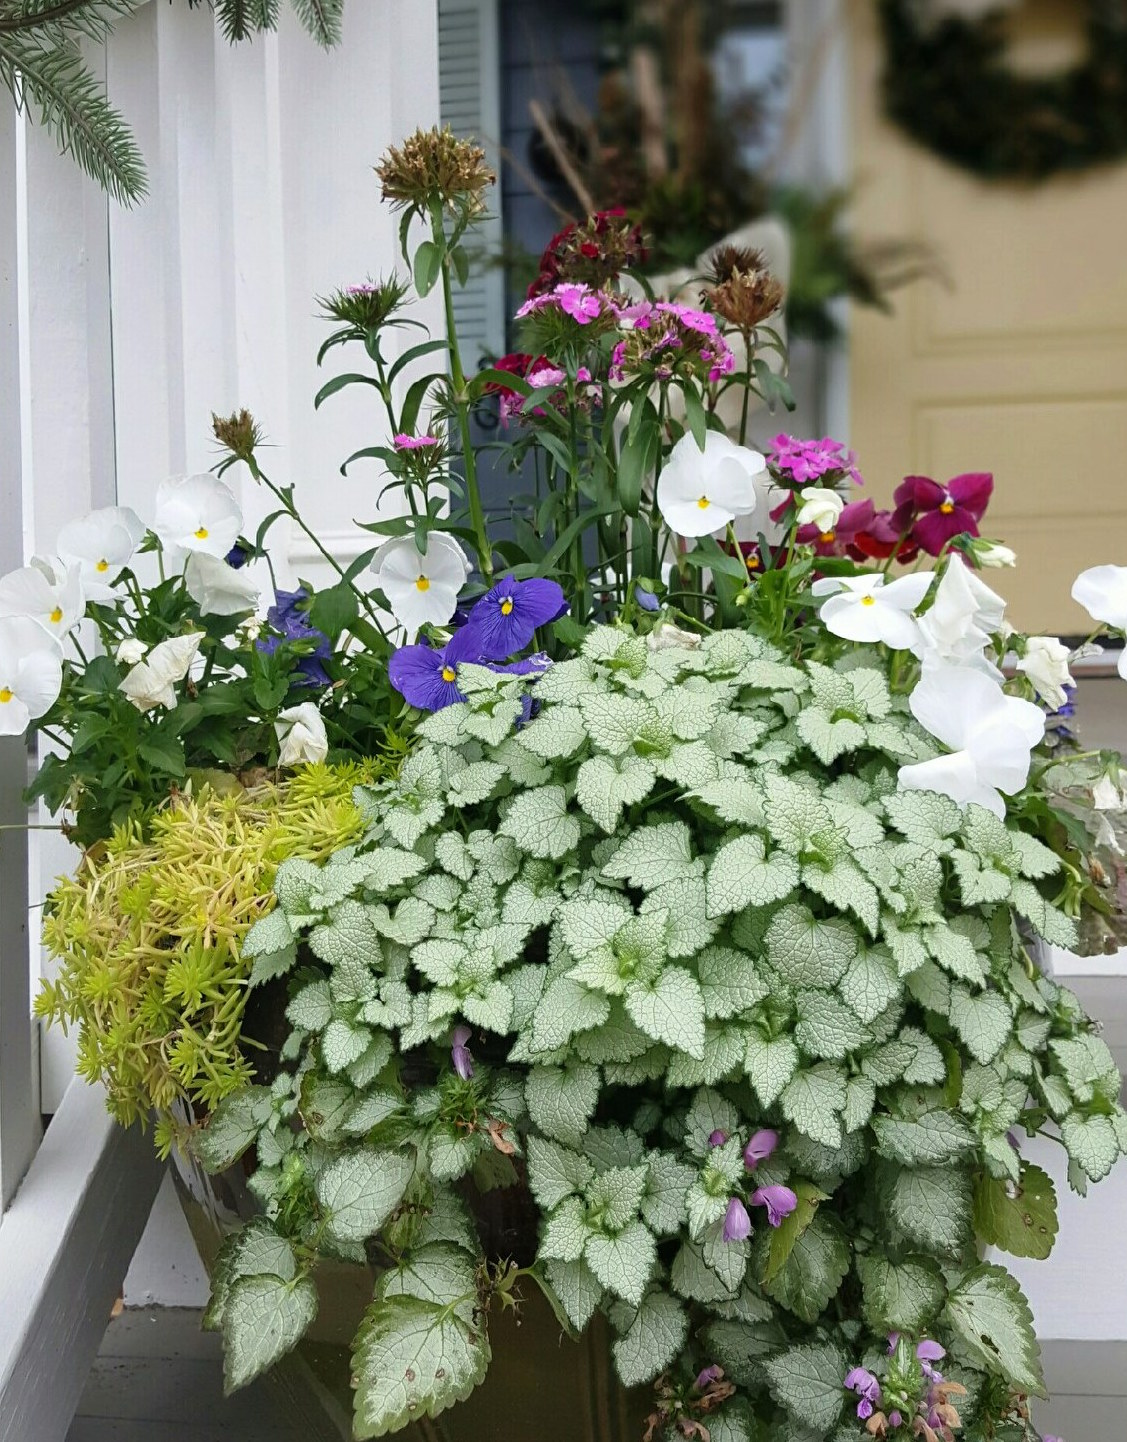 Lamiums reach a height of 8 to 12 inches with a spread of 24 inches, making them a perfect spiller plant in mixed containers.